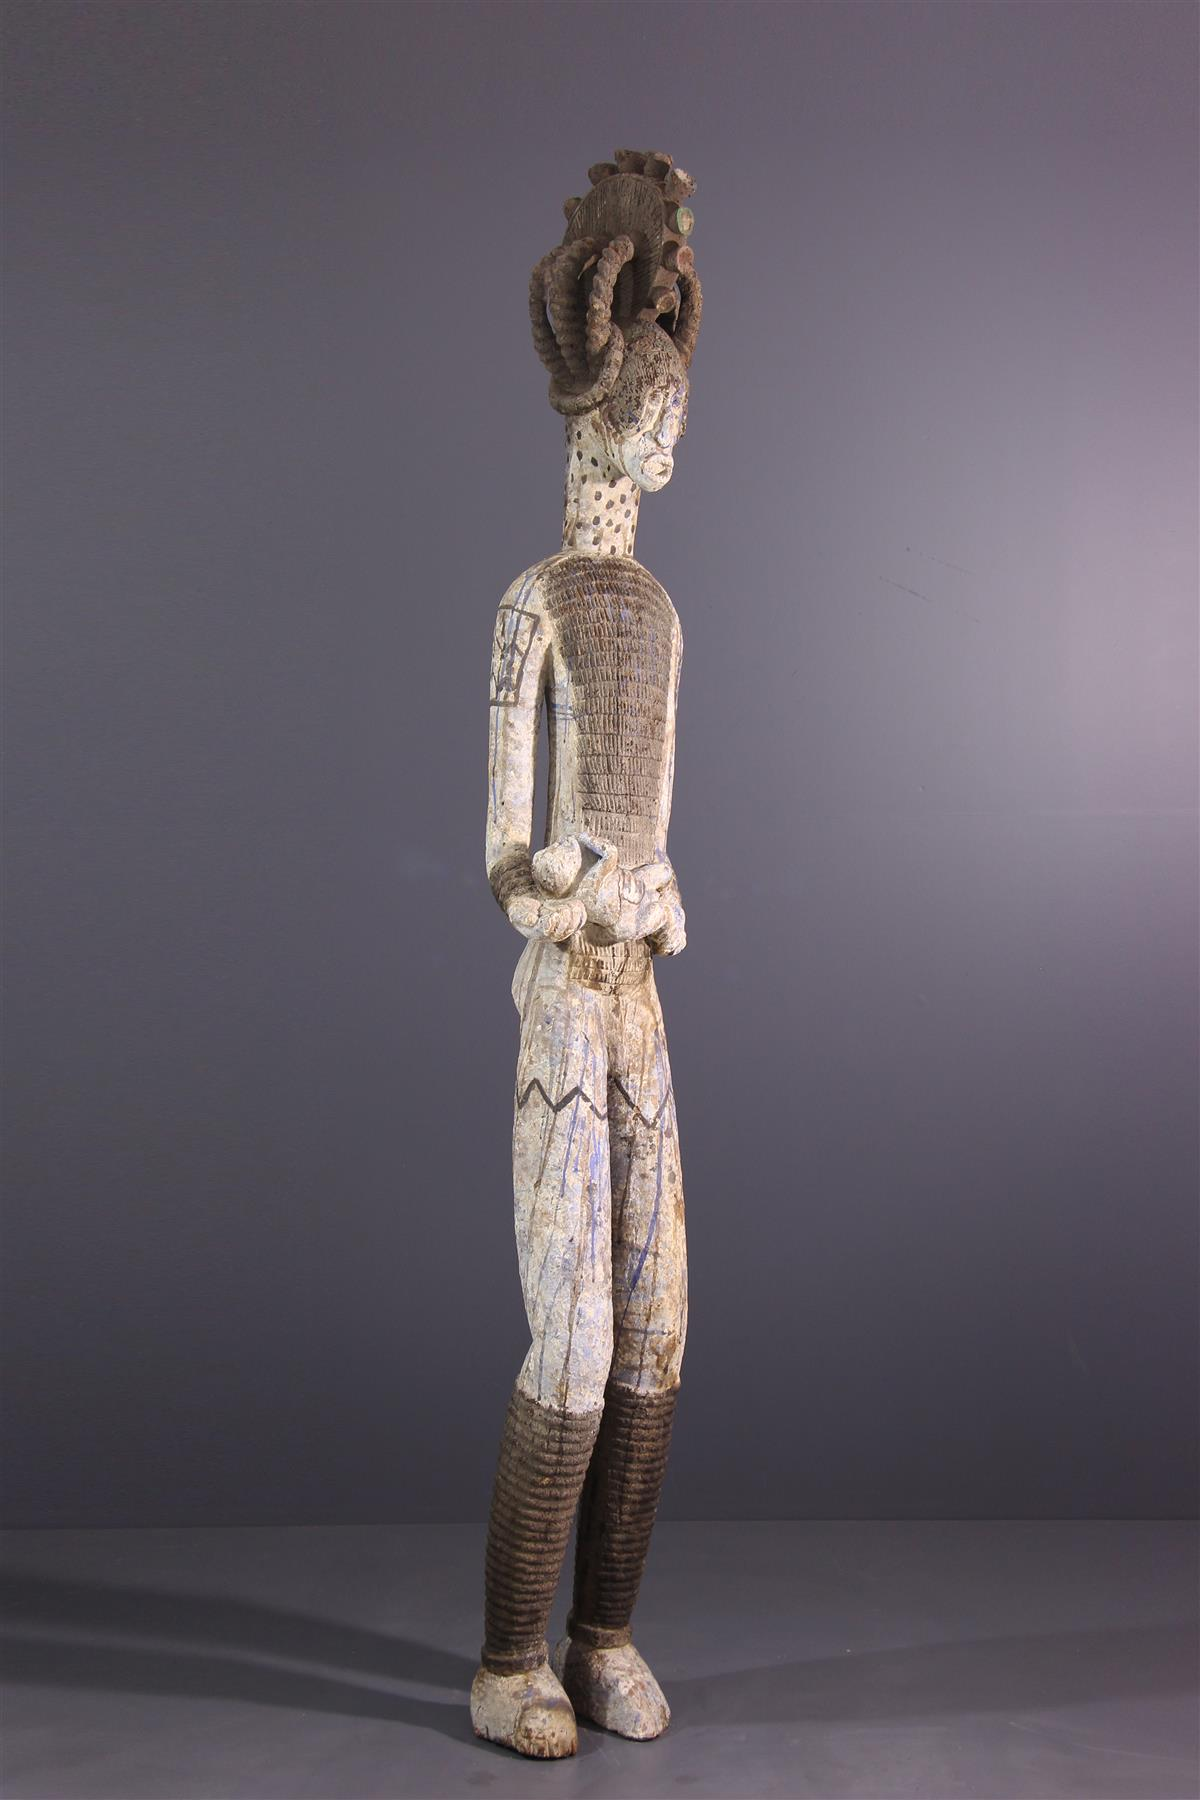 Statue Igbo - Tribal art